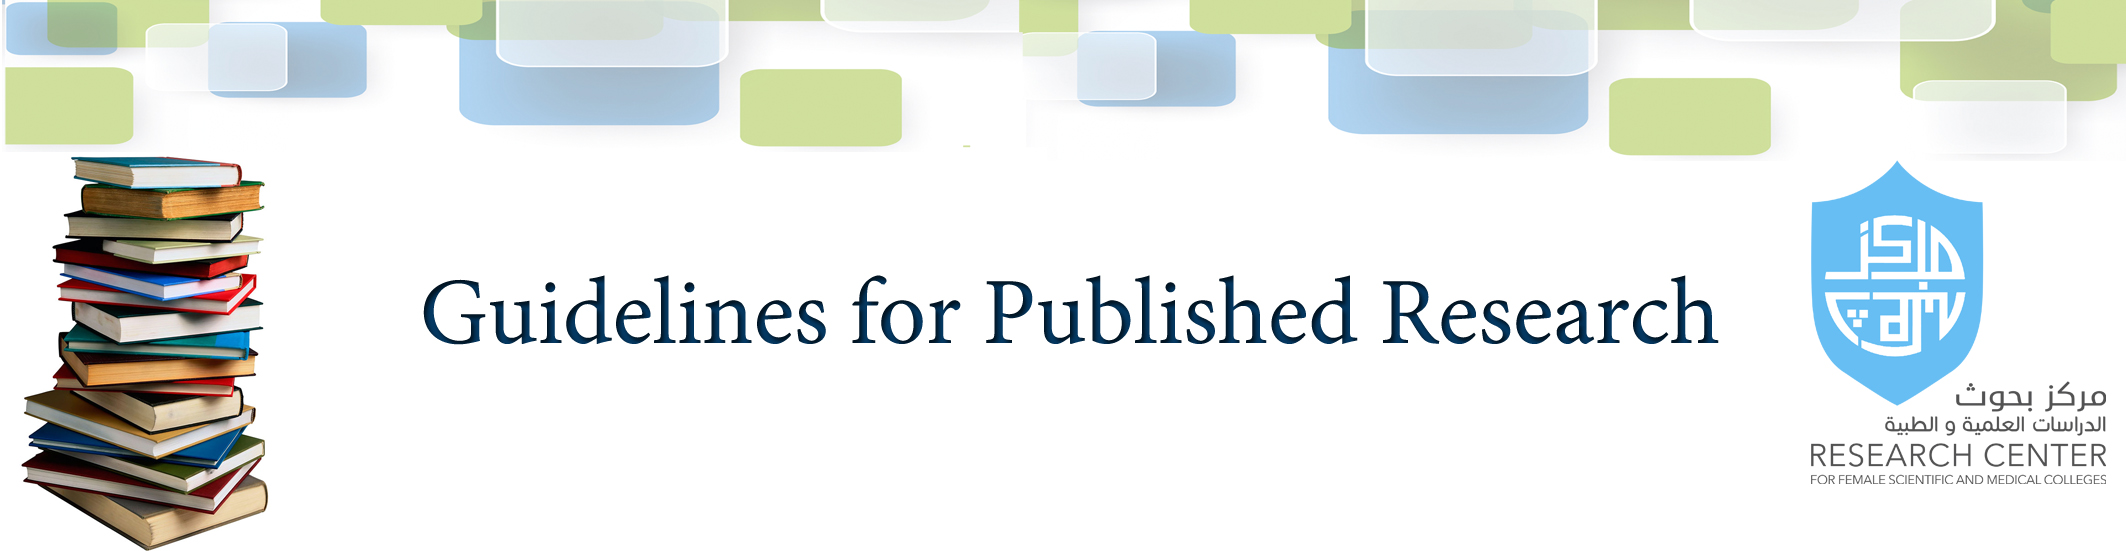 Guidelines for Published Research -   Guidelines for Published Research